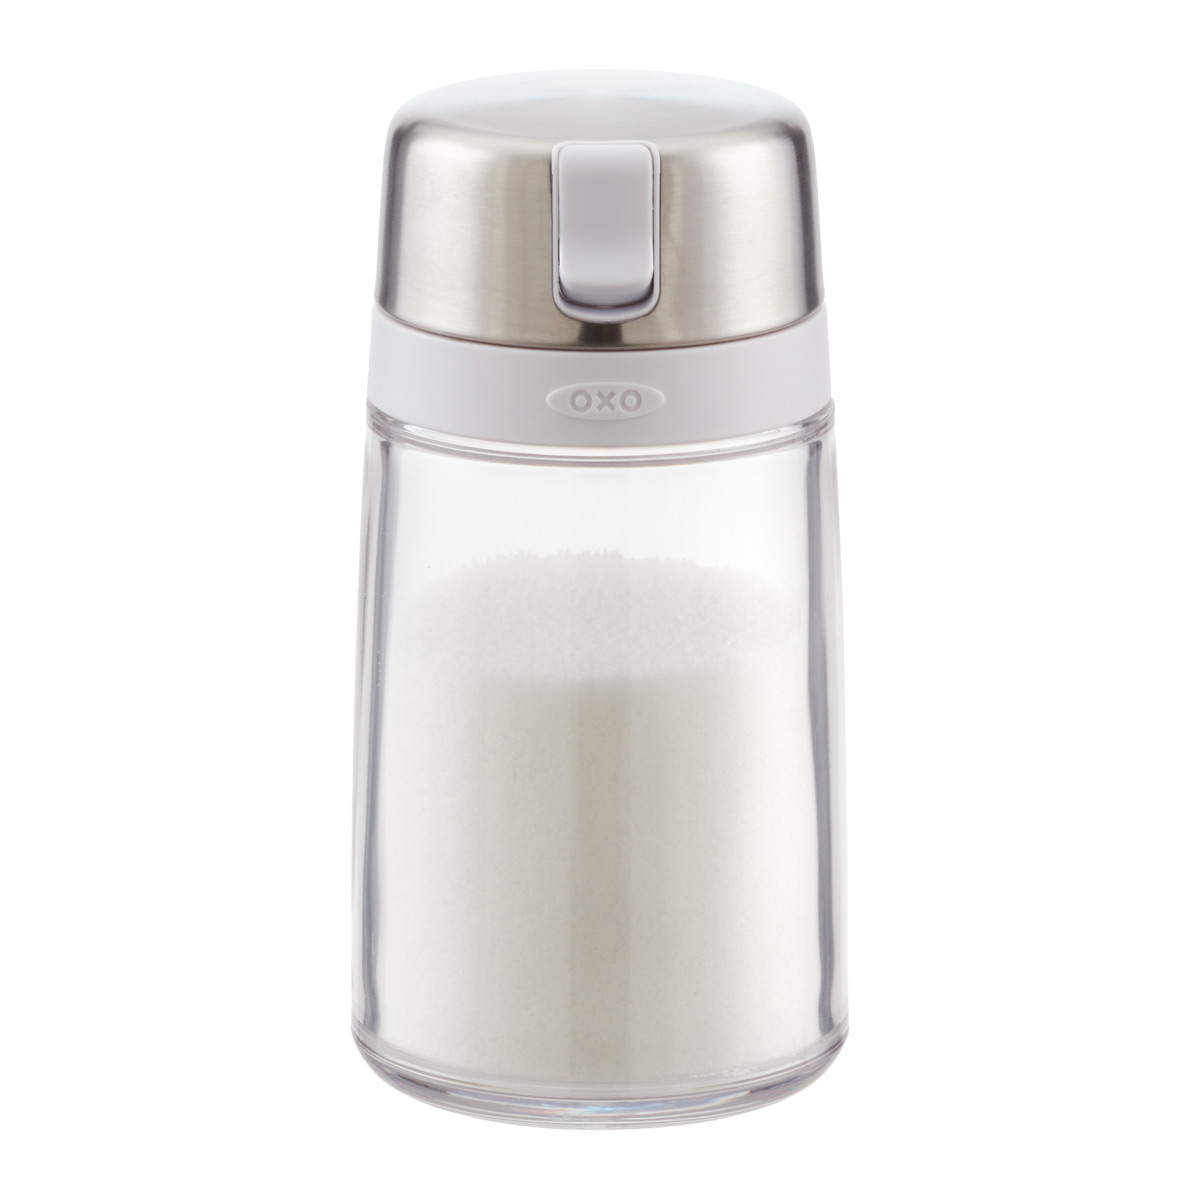 OXO Good Grips Sugar Dispenser